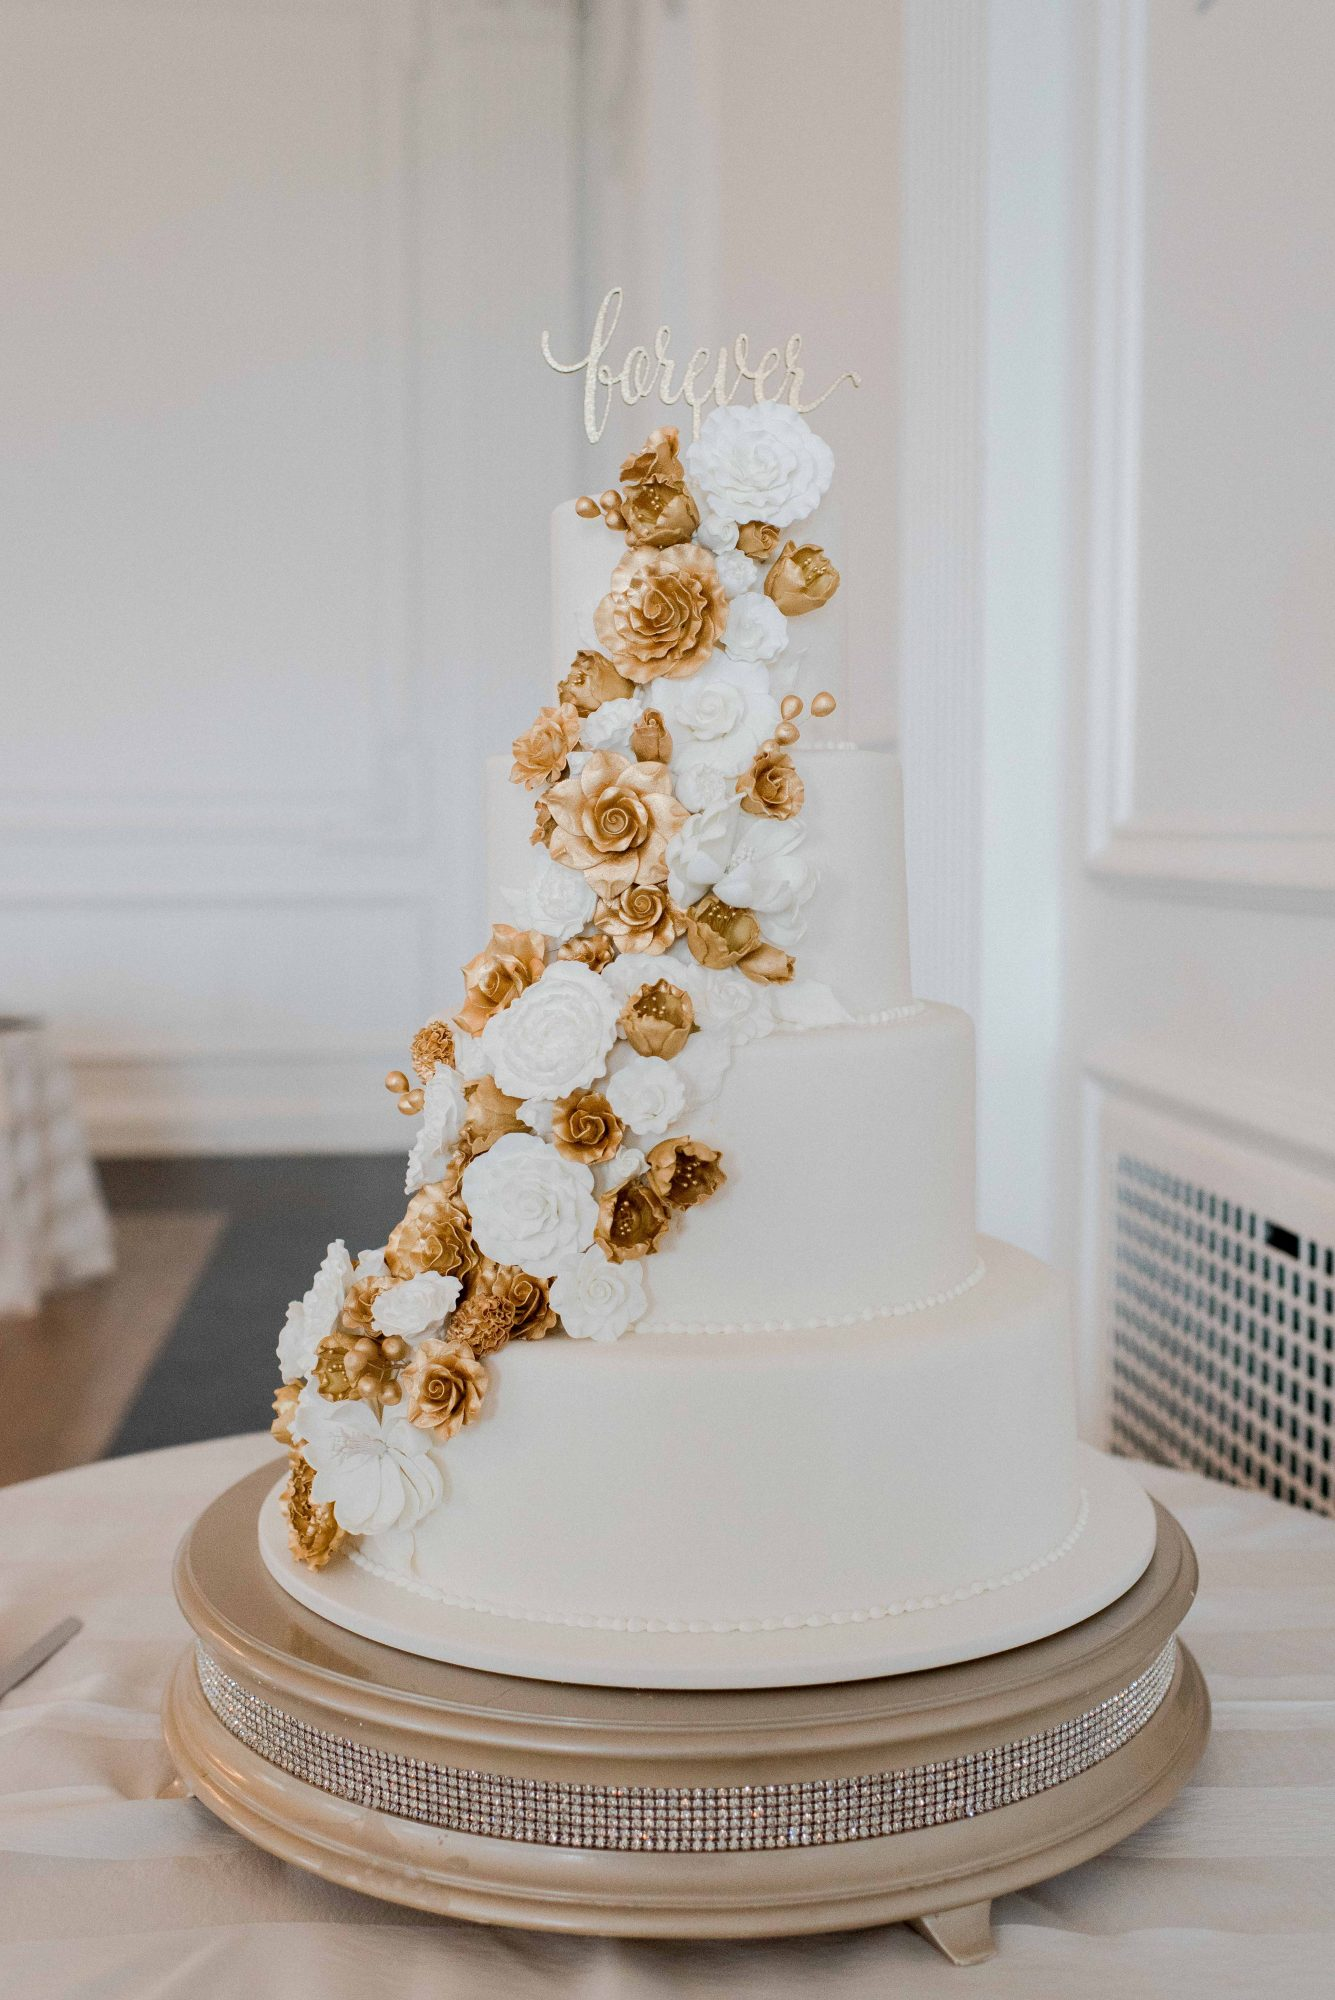 Arrange sugar flowers in a unique way, as Cescaphe did here. The cascading decorations were either white or an elegant gold.